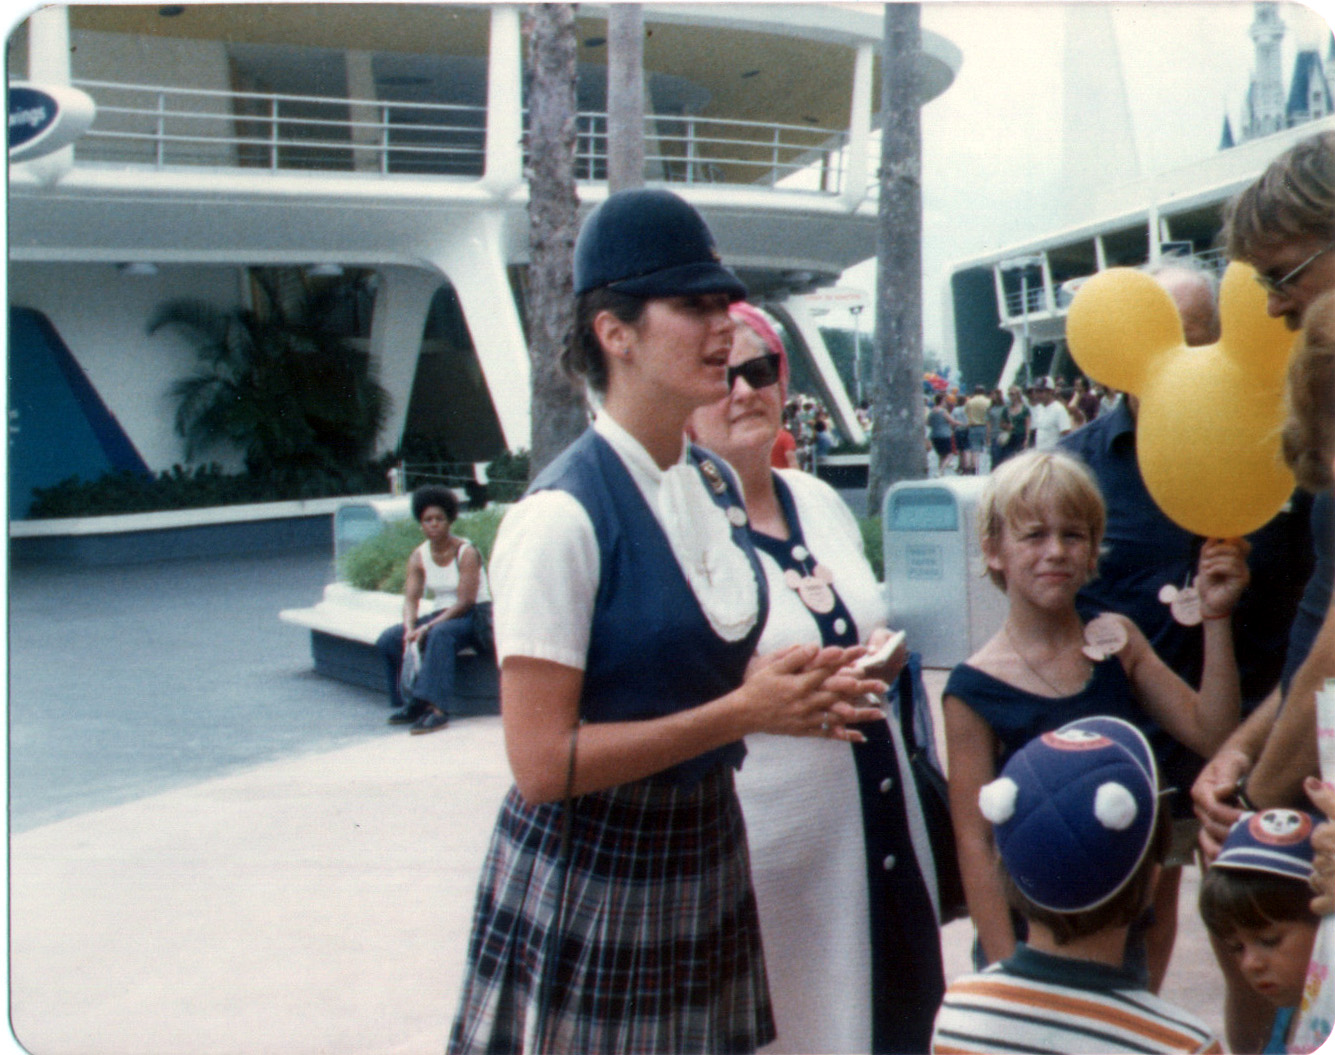 My family at Disney World 1975